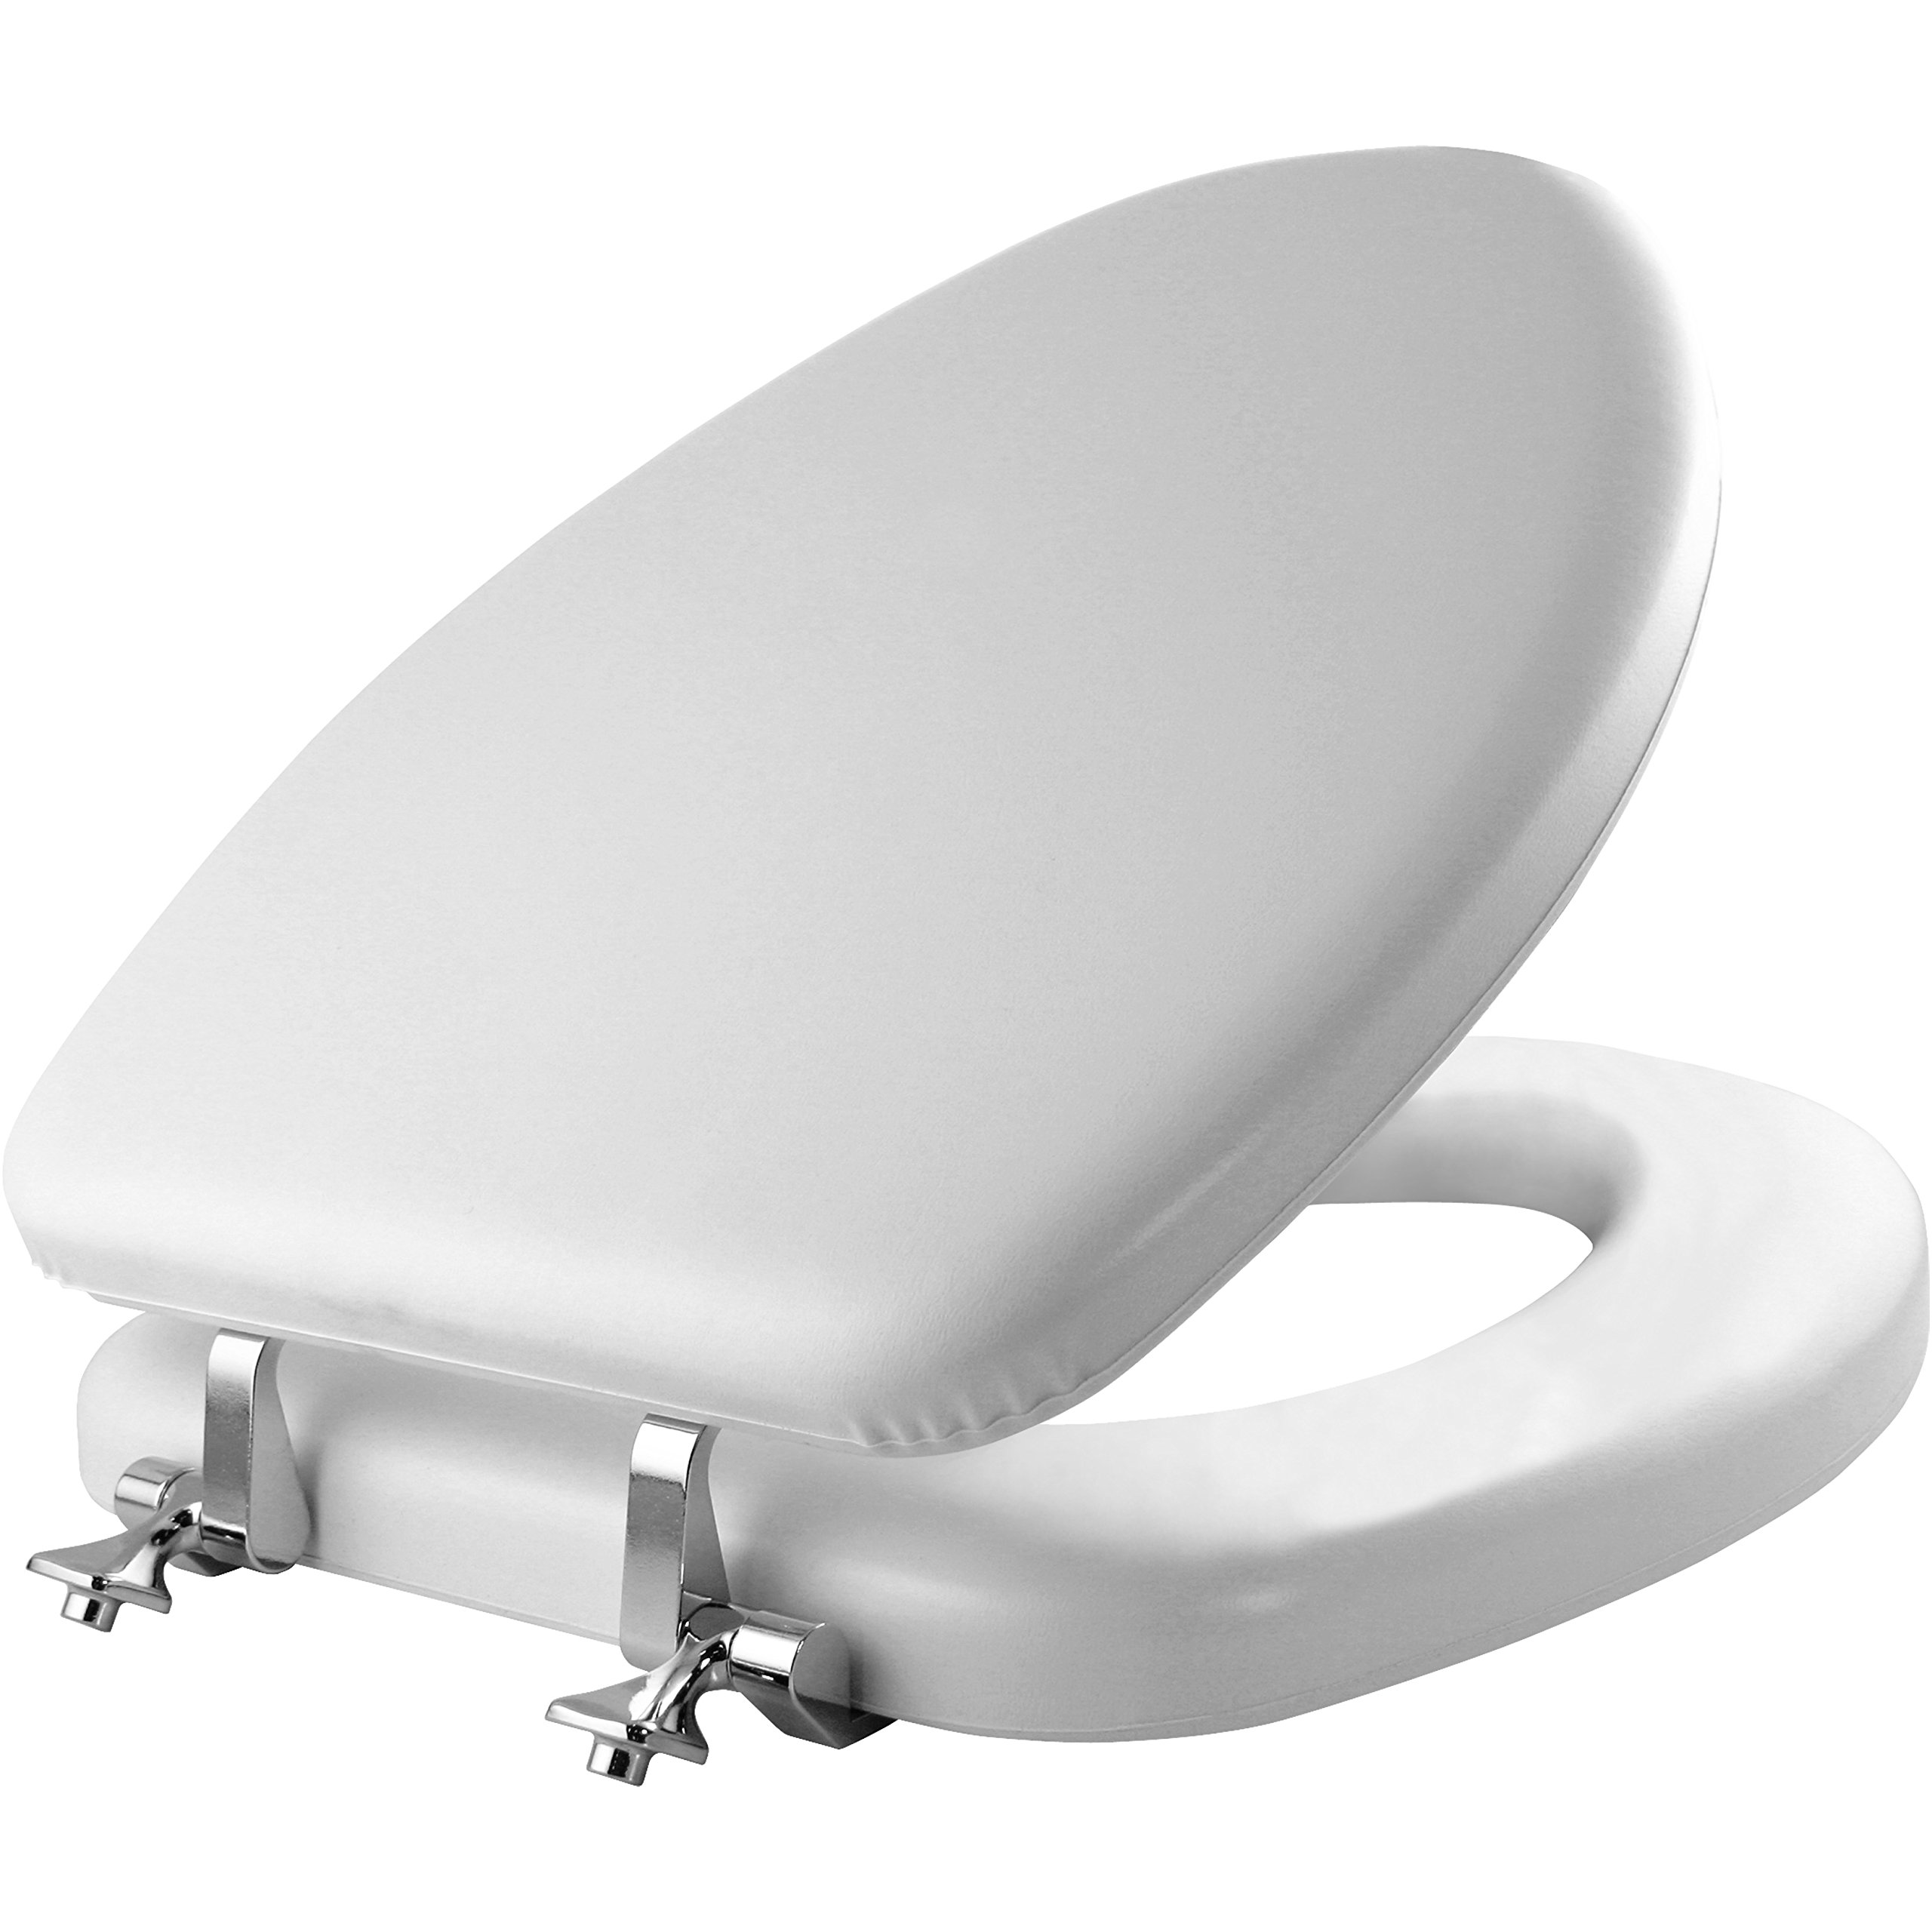 MAYFAIR 113CP 000 Soft Toilet Seat with Chrome Hinges, ELONGATED, Padded with Wood Core, White